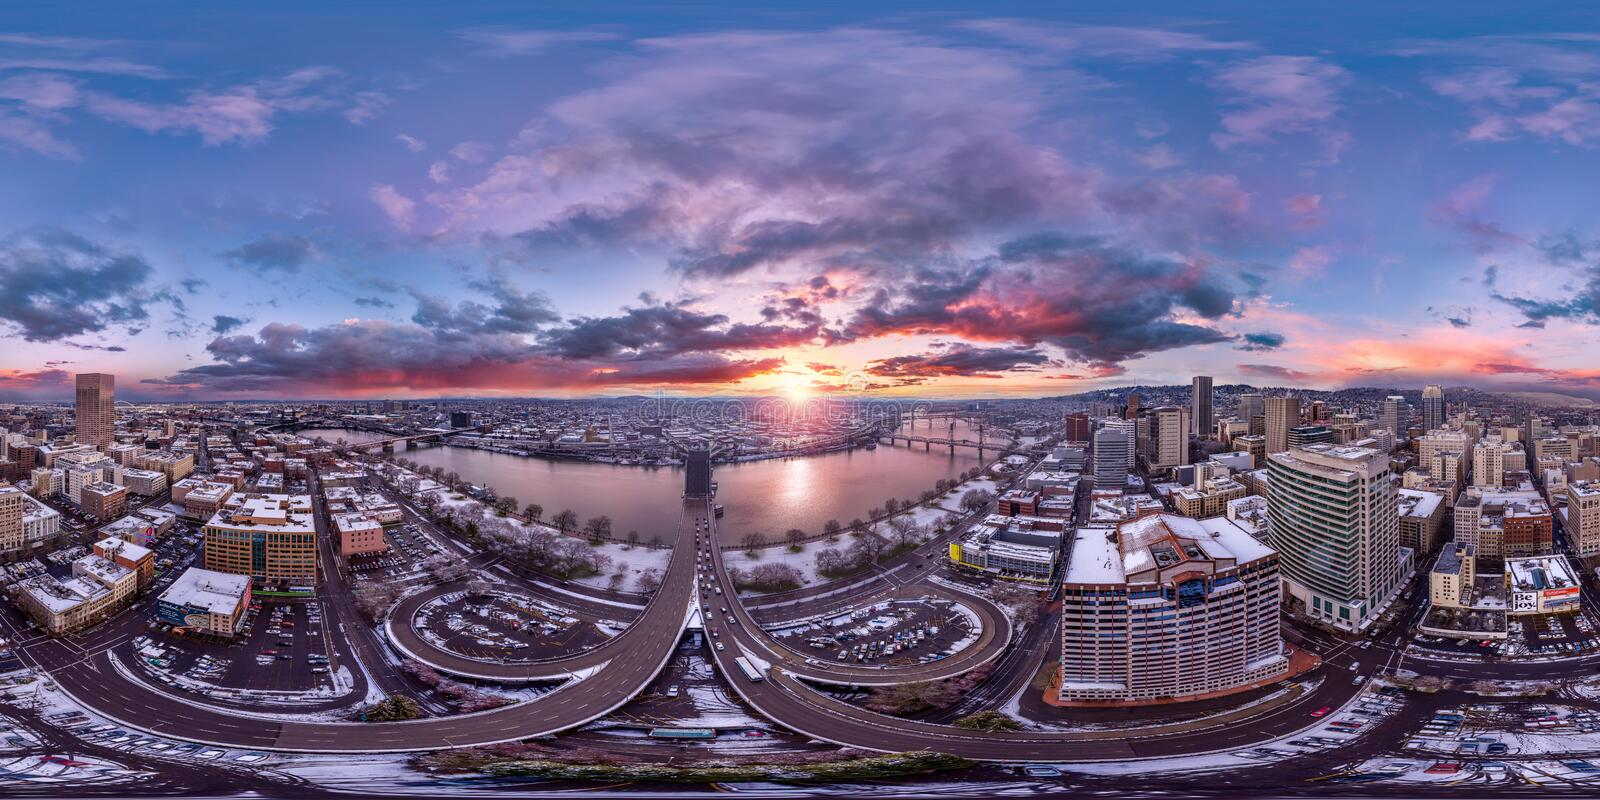 Portland downtown sunrise 360 by 180 photosphere. This is a full 360x180 pano of snowy Portland downtown at dawn stock images